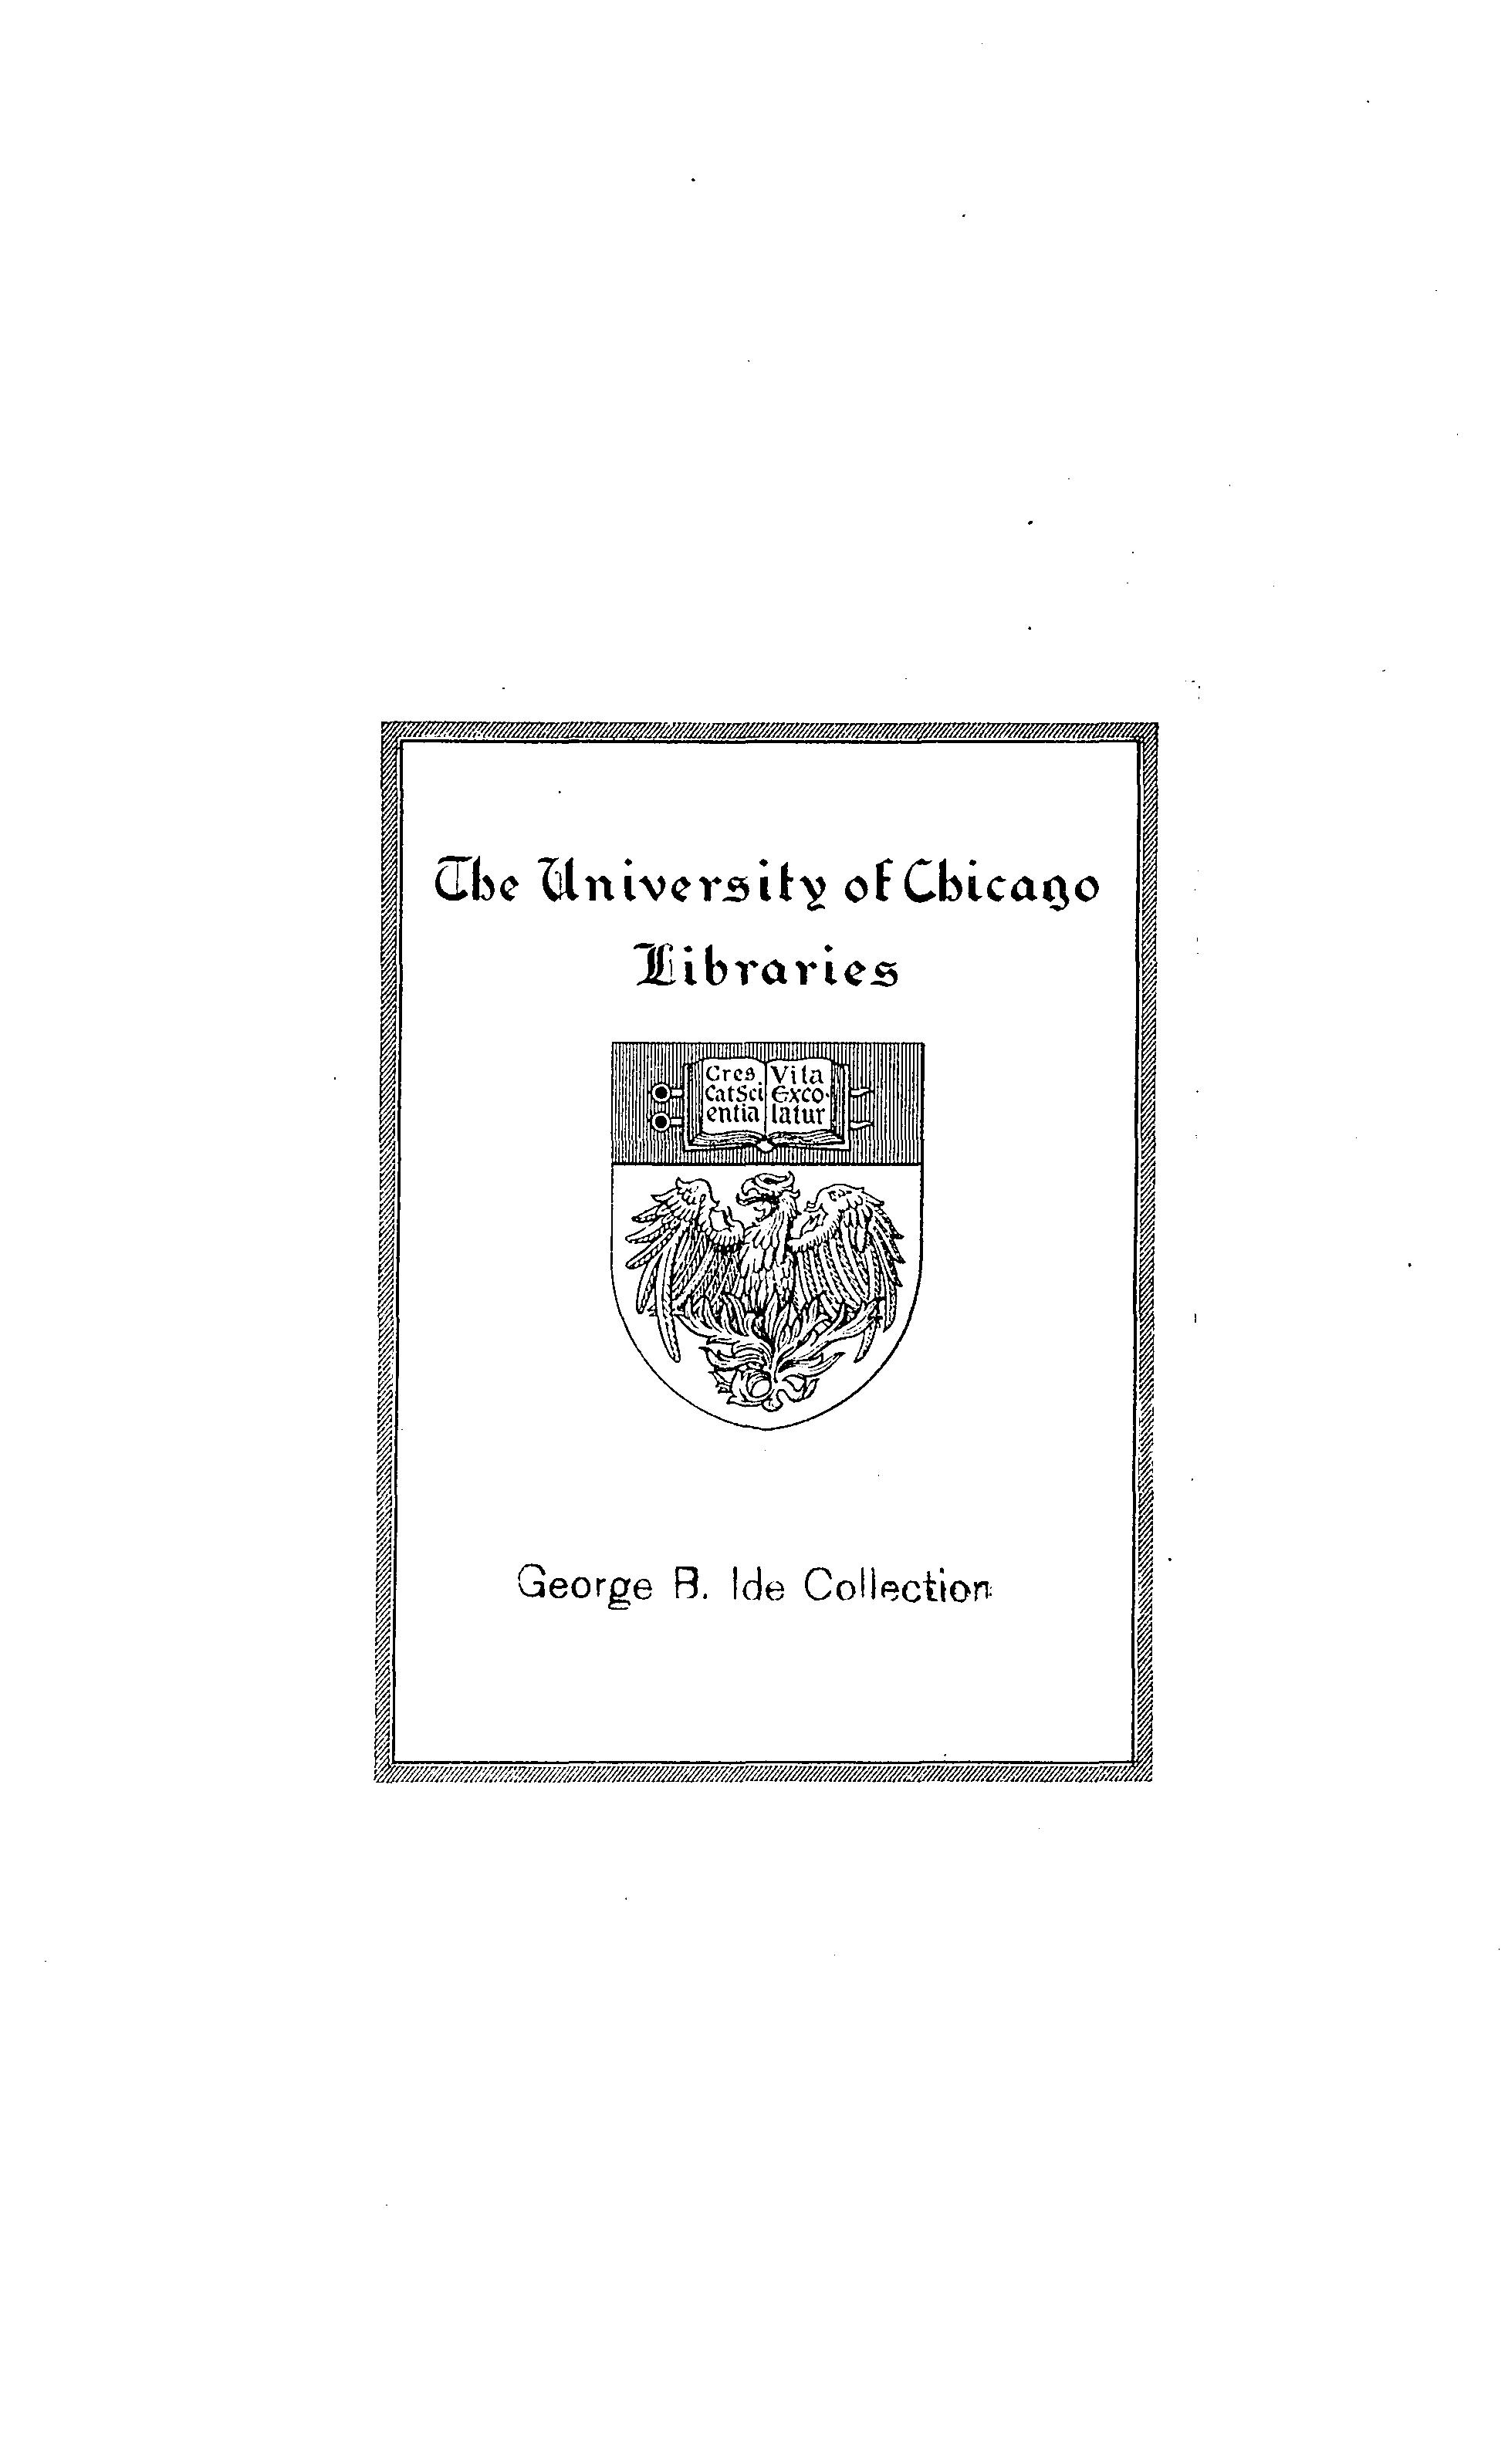 Homiletics, and Pastoral theology by Shedd, William Greenough Thayer